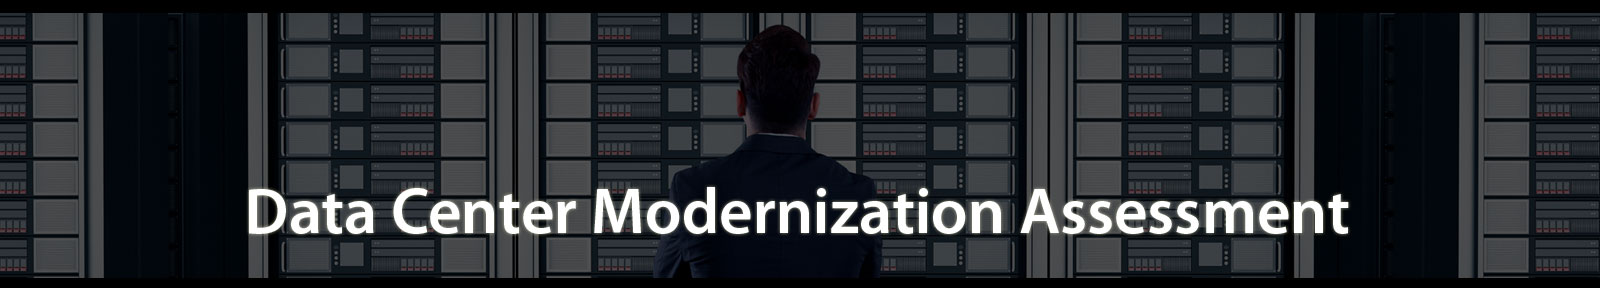 Data Center Modernization Assessment